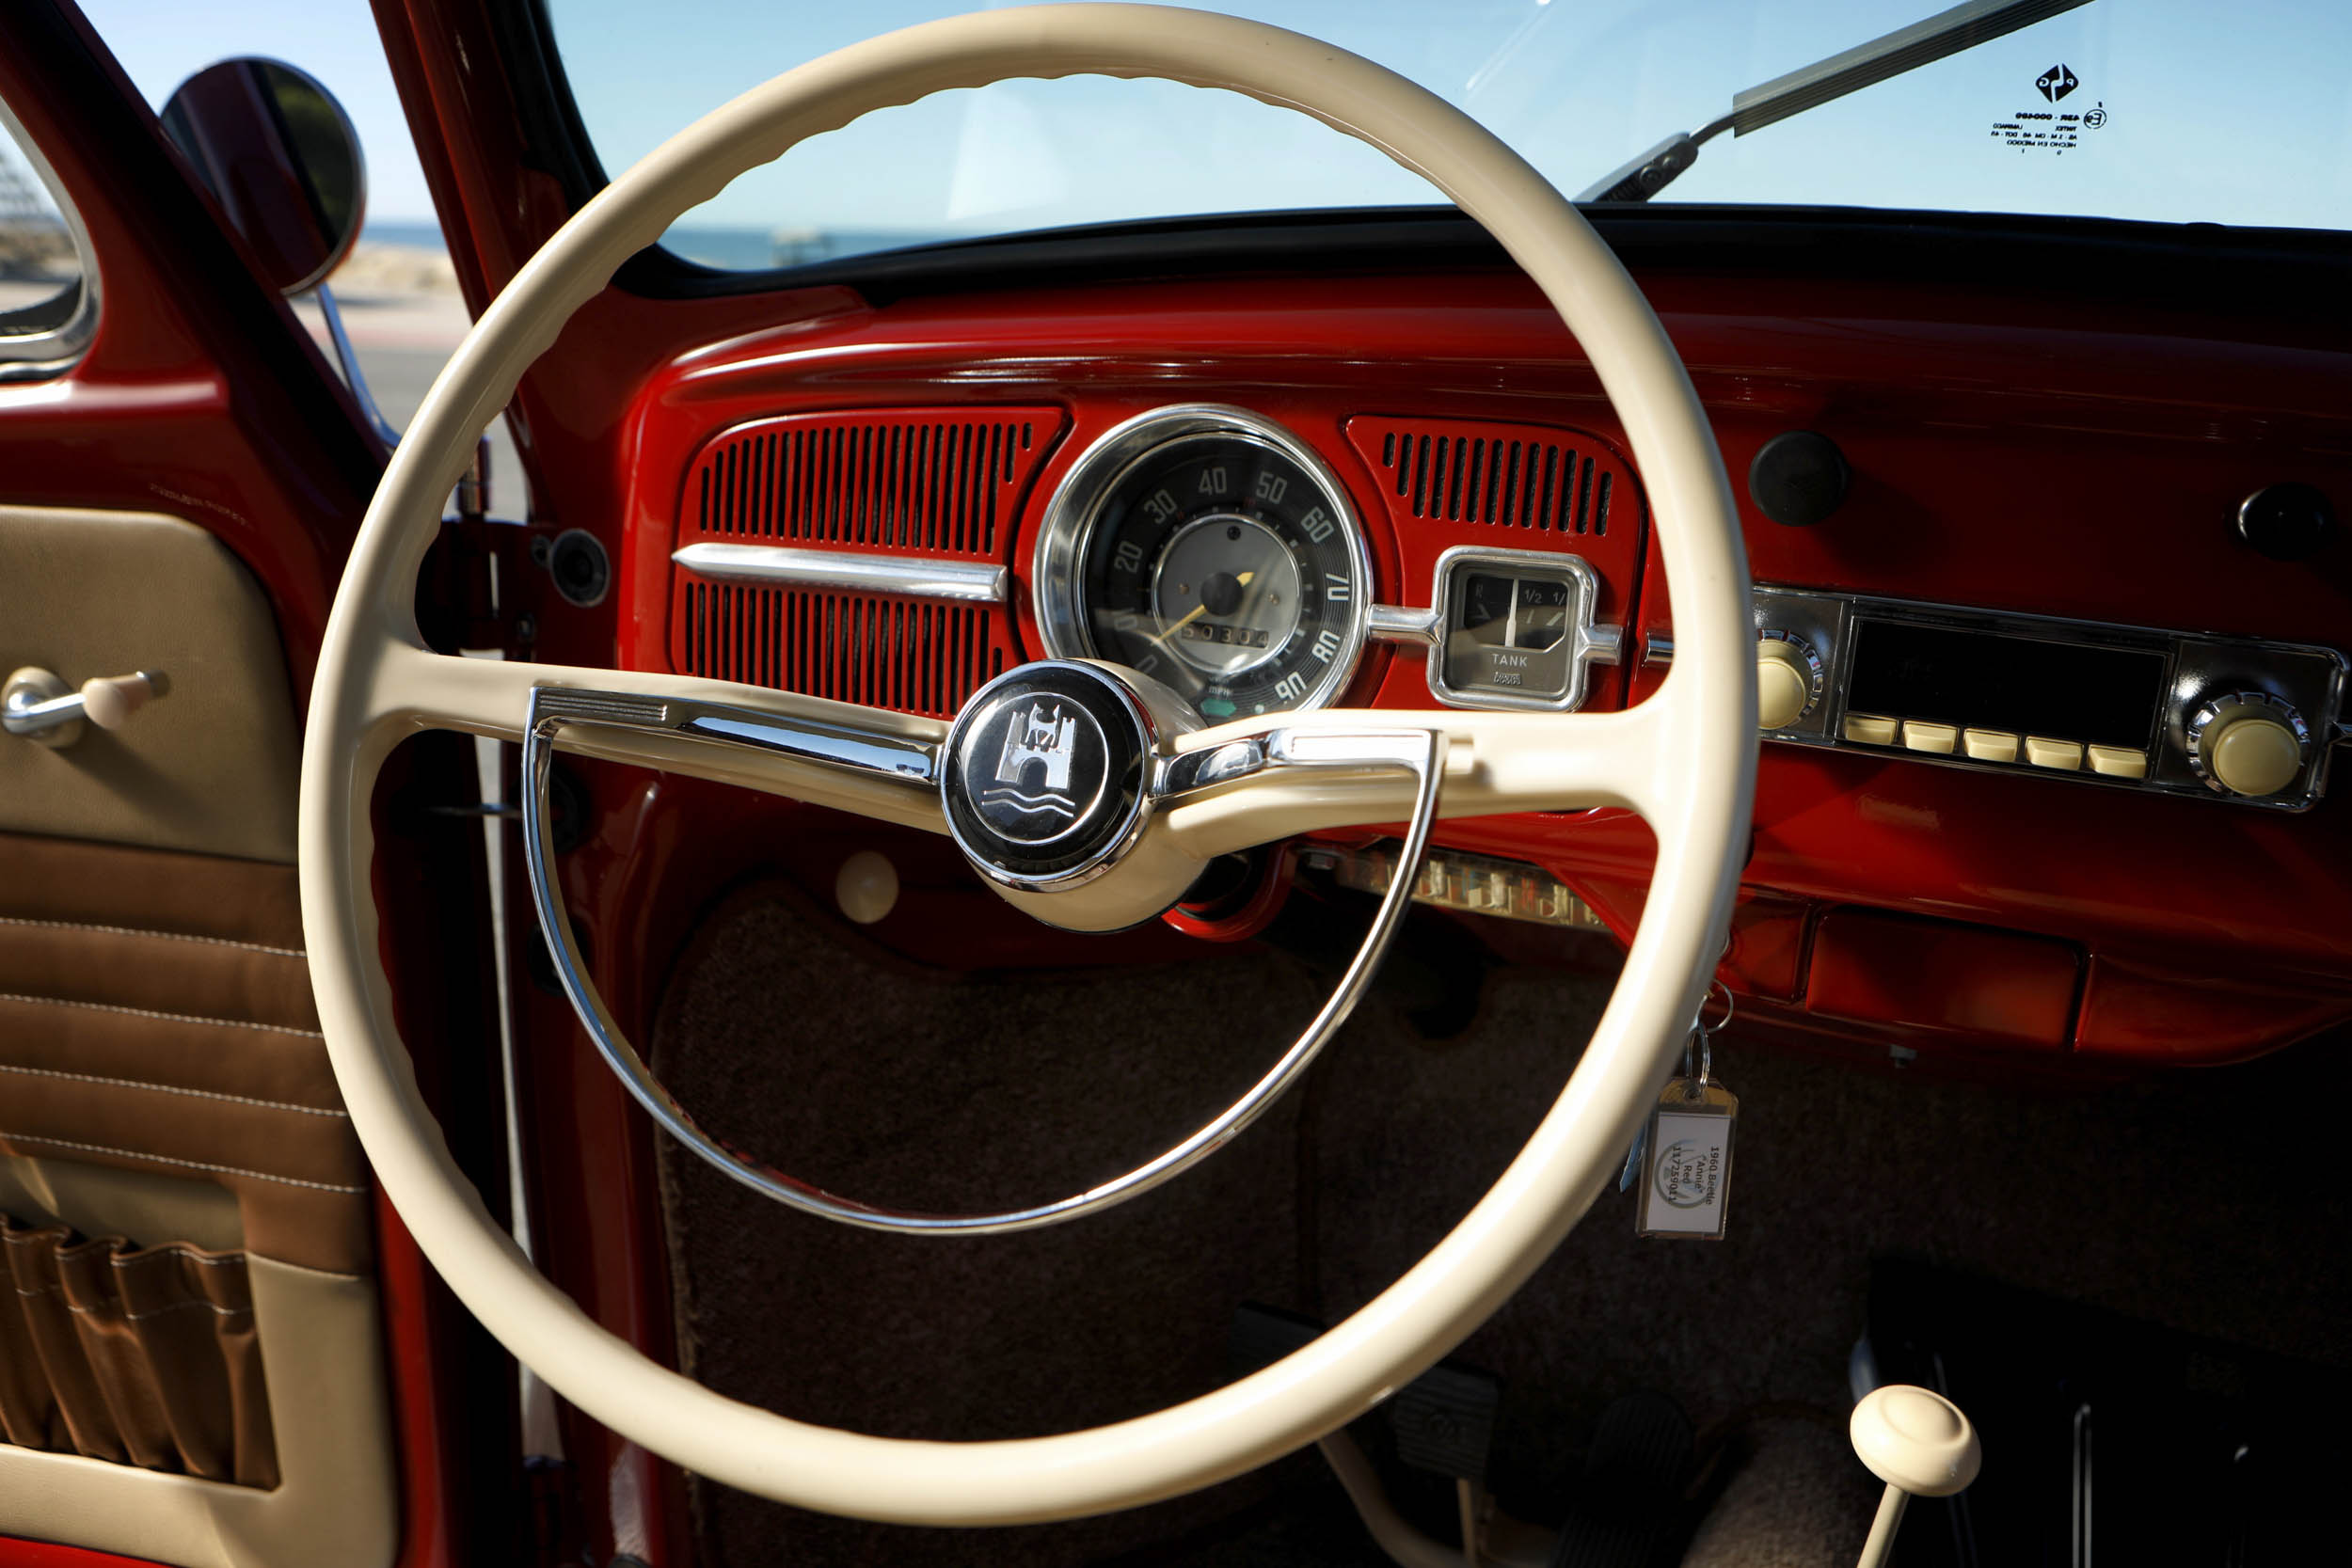 1967 Volkswagen Beetle restored steering wheel